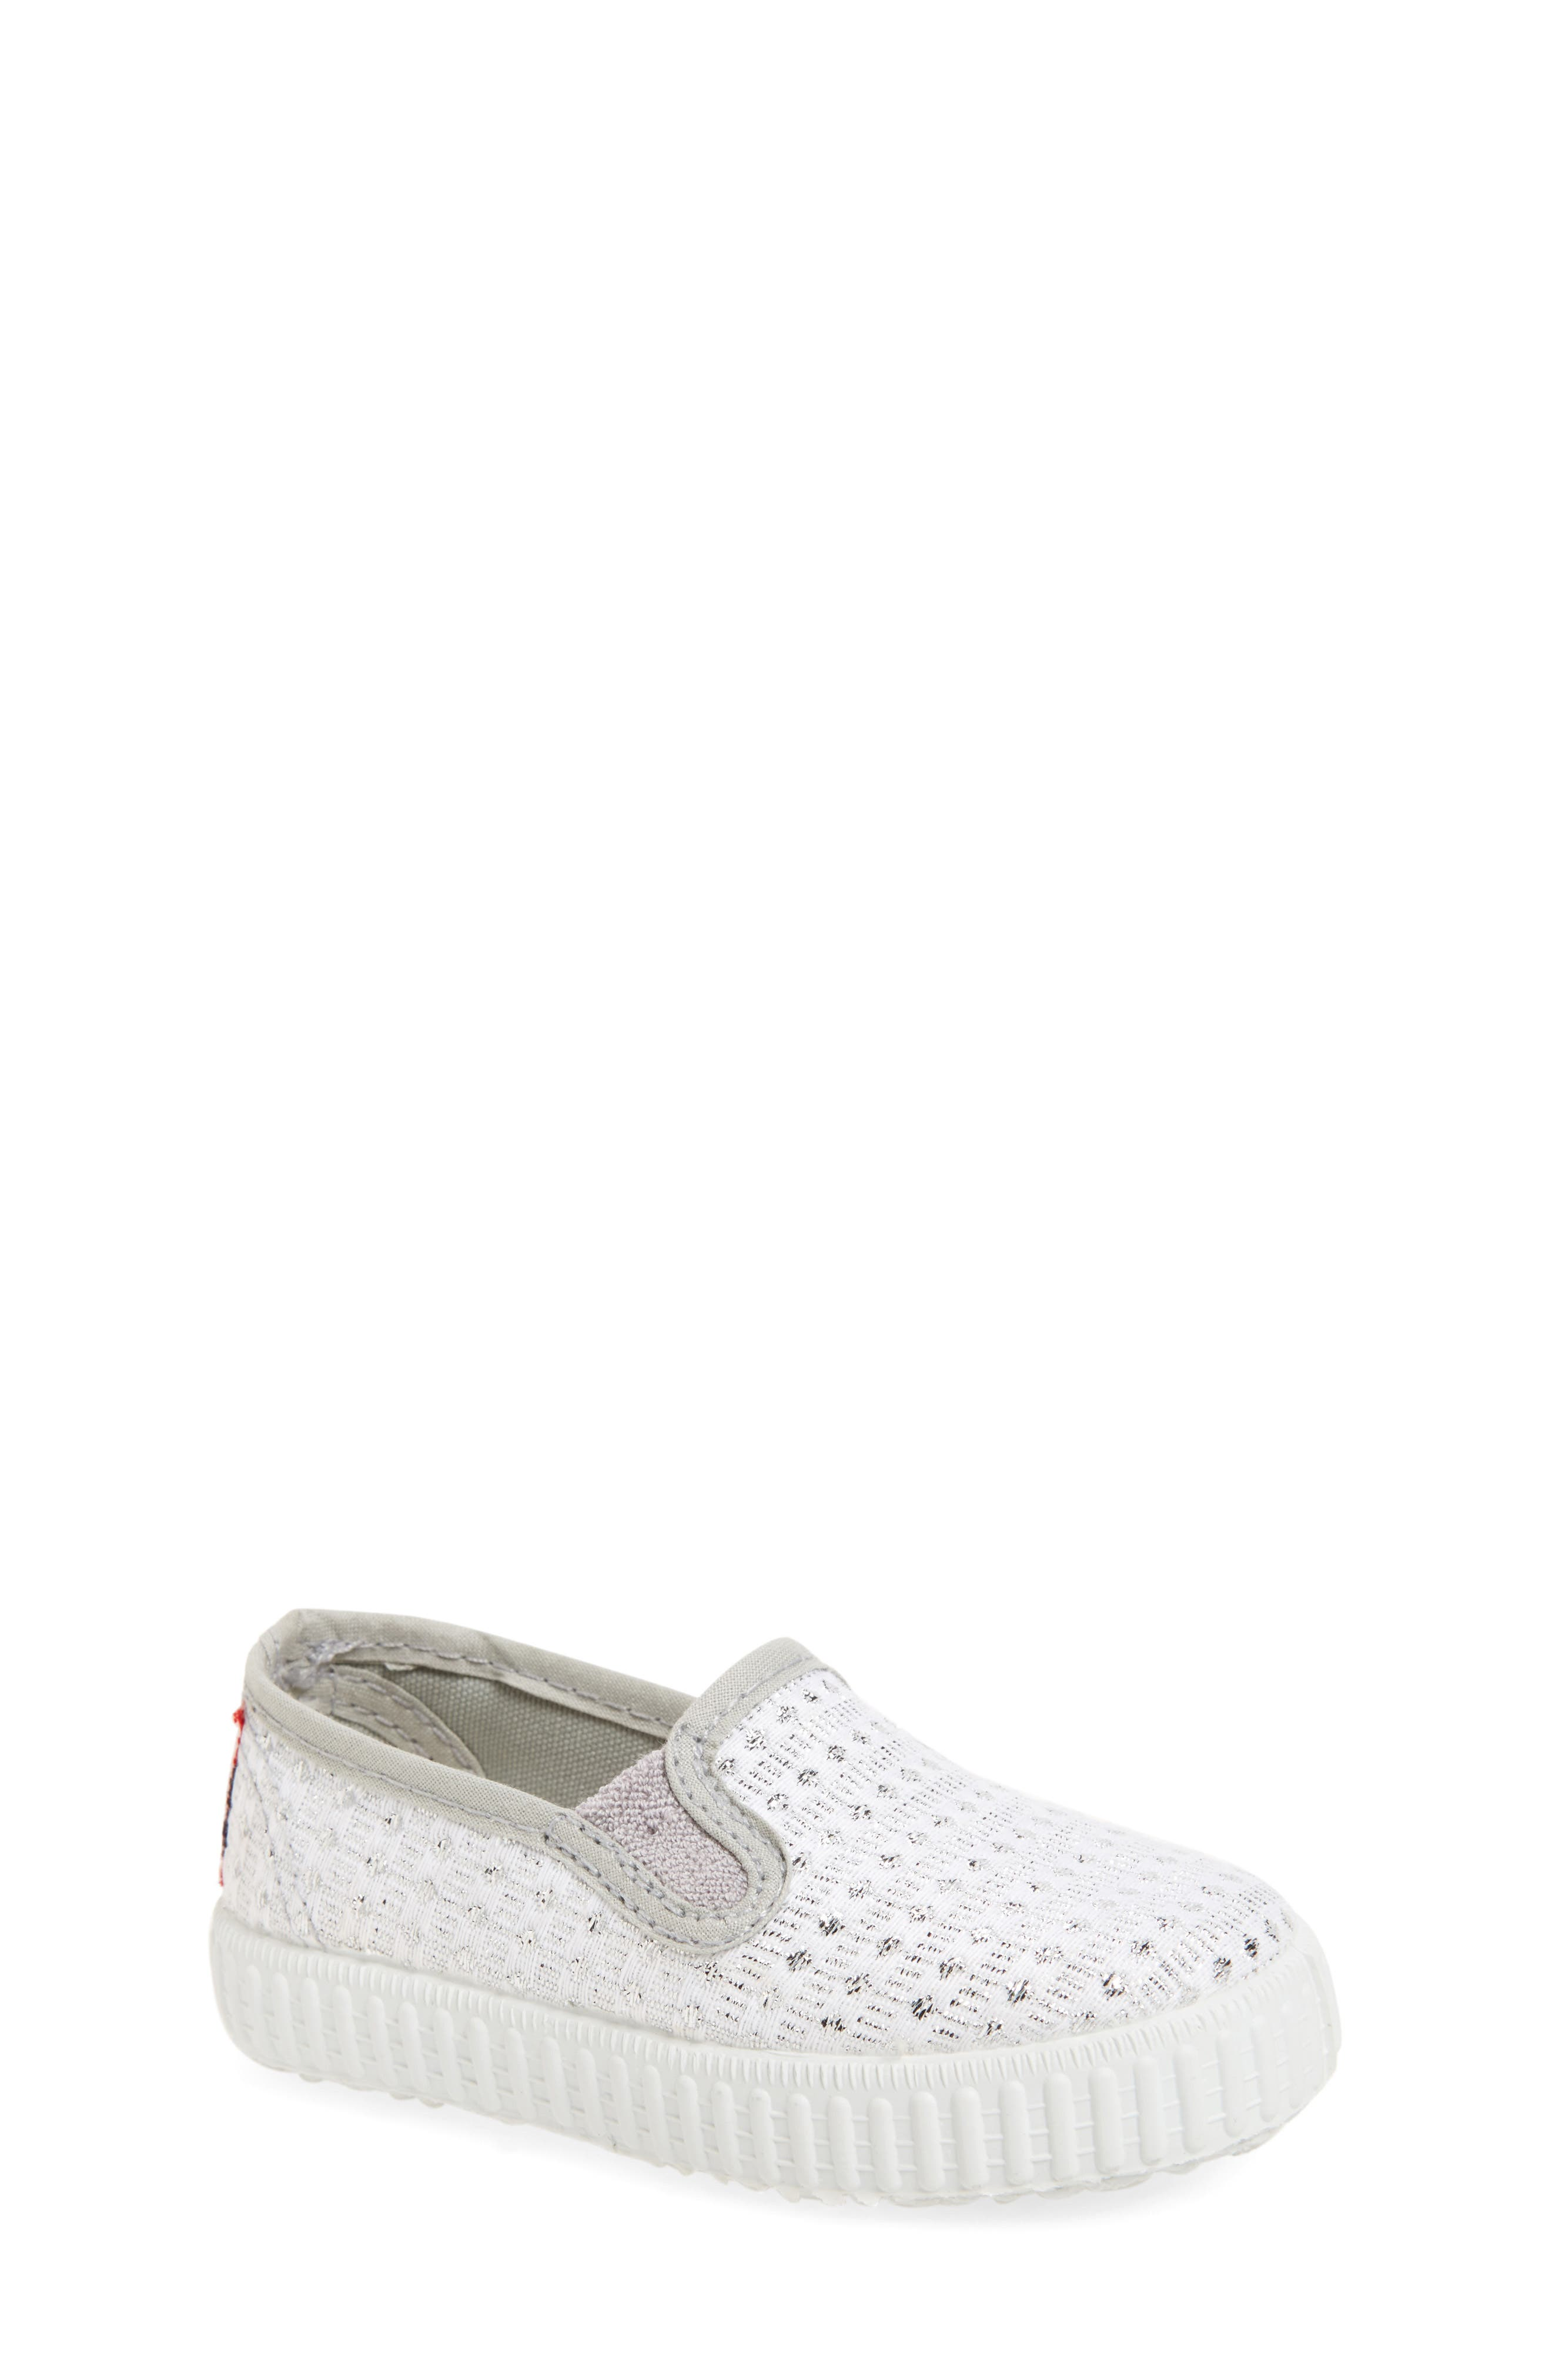 Alternate Image 1 Selected - Cienta Slip-On Sneaker (Walker & Toddler)